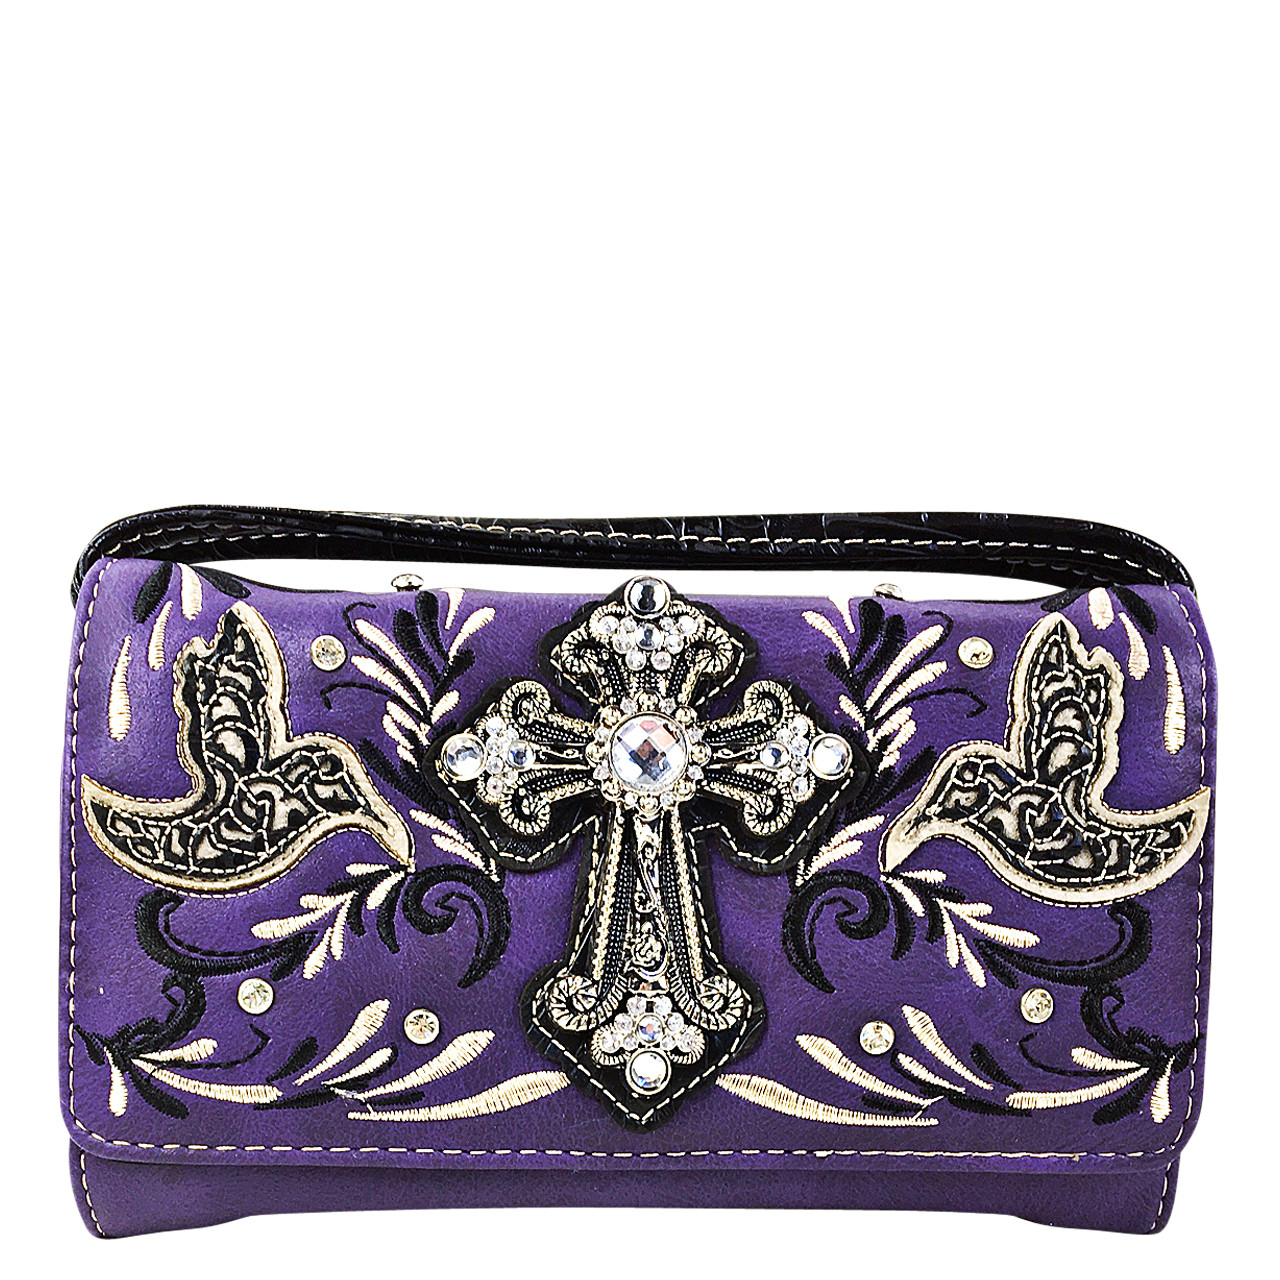 PURPLE STUDDED RHINESTONE CROSS WITH STITCHED LOOK CLUTCH TRIFOLD WALLET